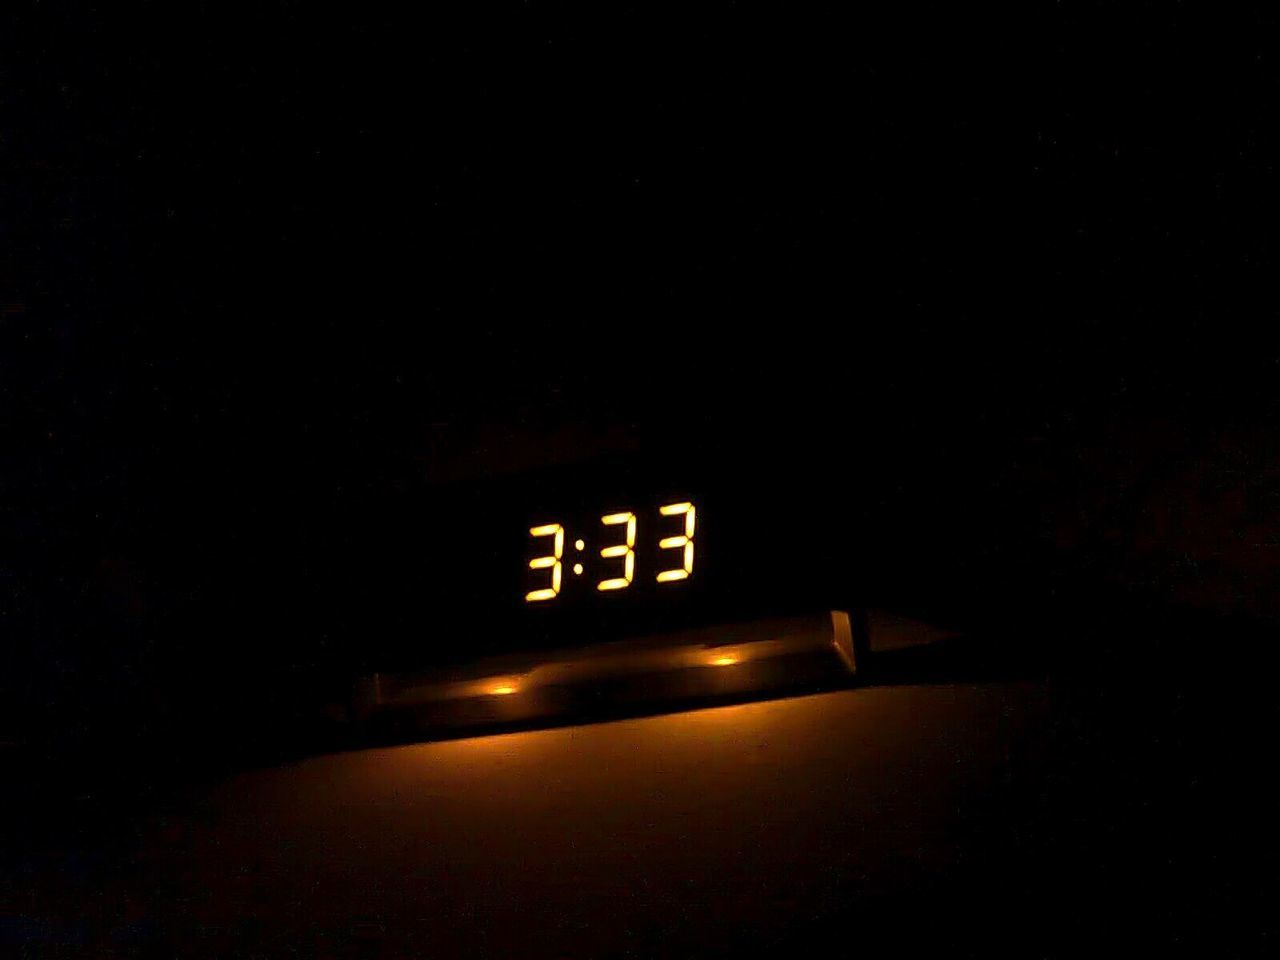 Technology I Can't Live Without Watch The Clock My Smartphone Life Learn & Shoot: Single Light Source Night Midnight Clock Watch Timer Sleepless Nights Sleep Nighttime Nighttime Lights Bedroom Close Up Technology